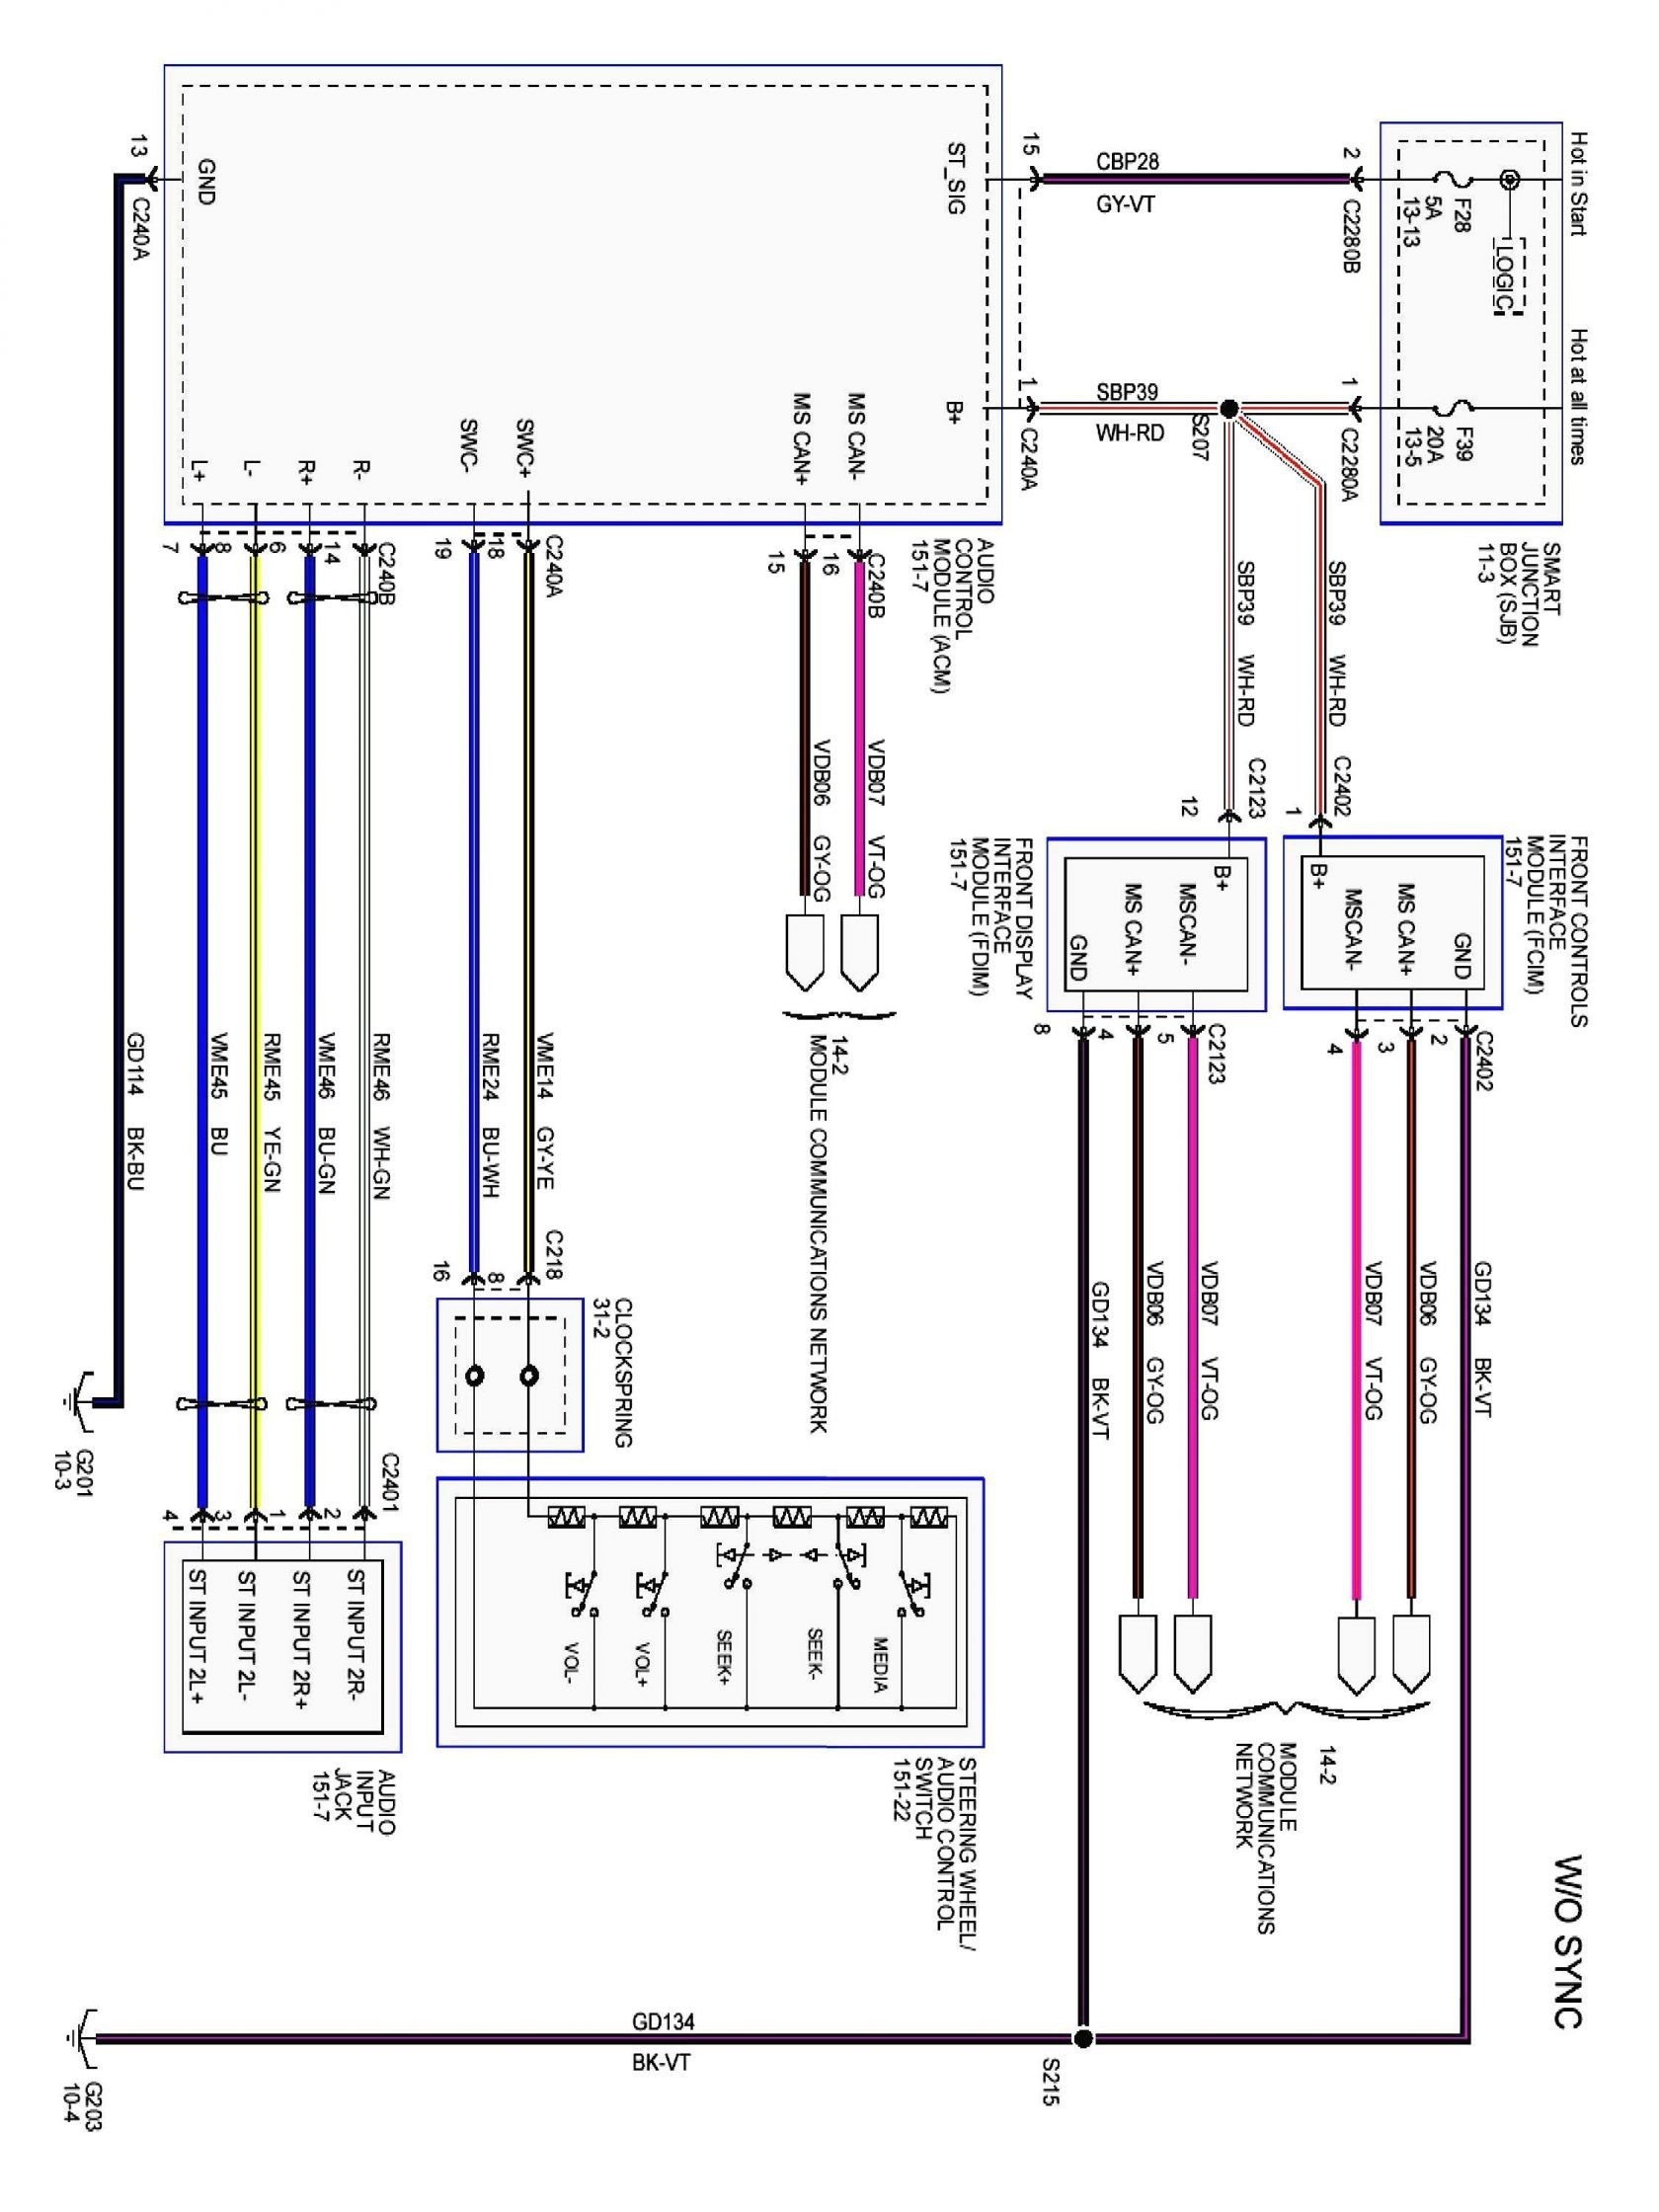 amp power step wiring diagram Collection-Wiring Diagram For Rv Steps New Amp Power Step Wiring Diagram 17-r